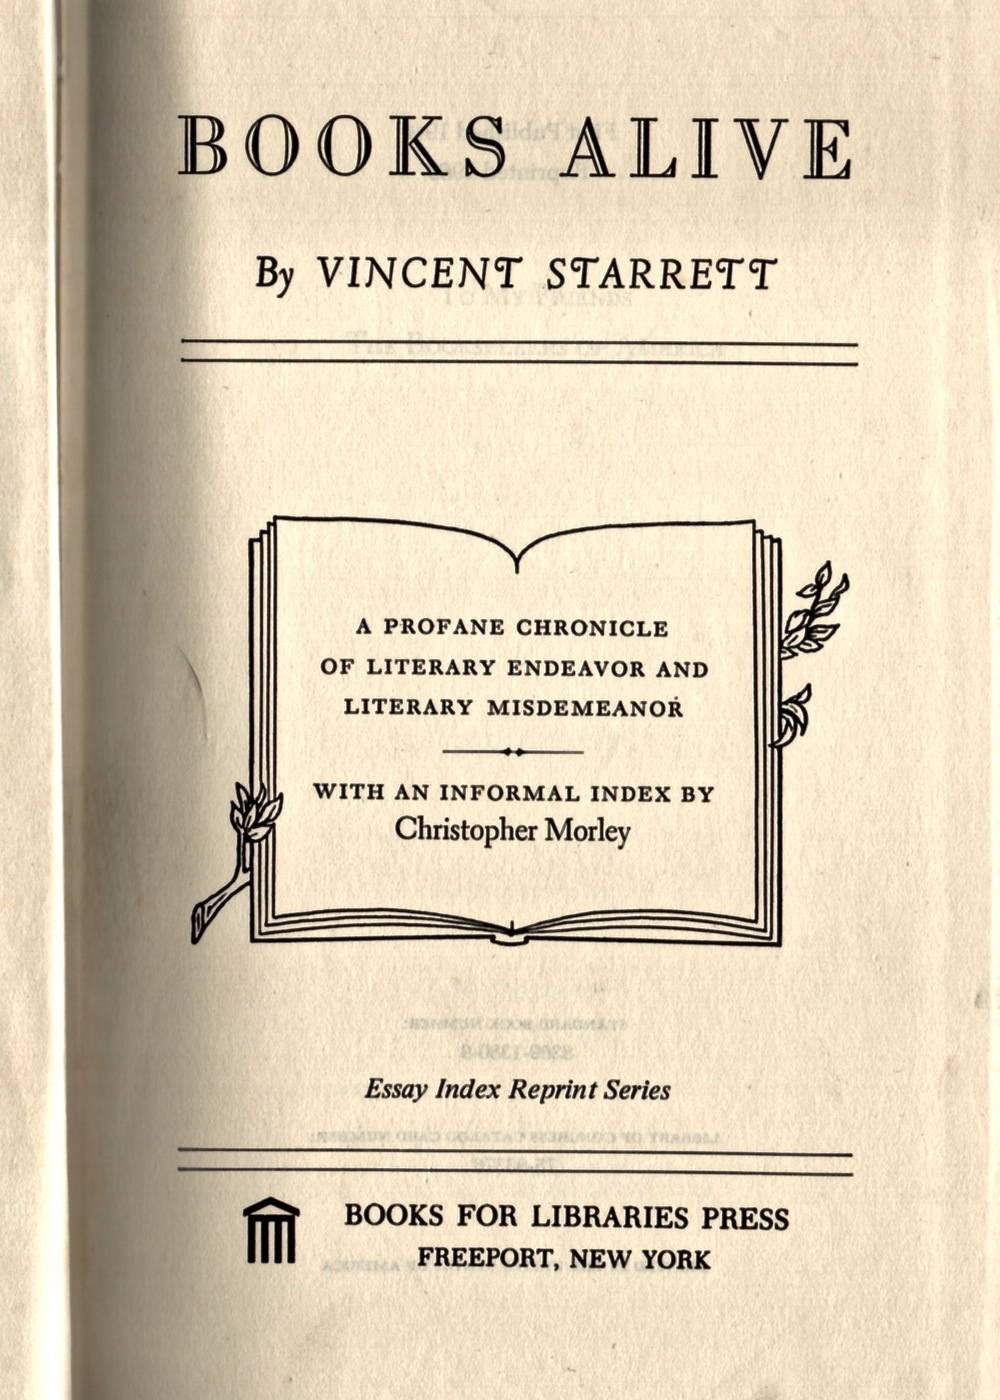 books alive title page.jpg